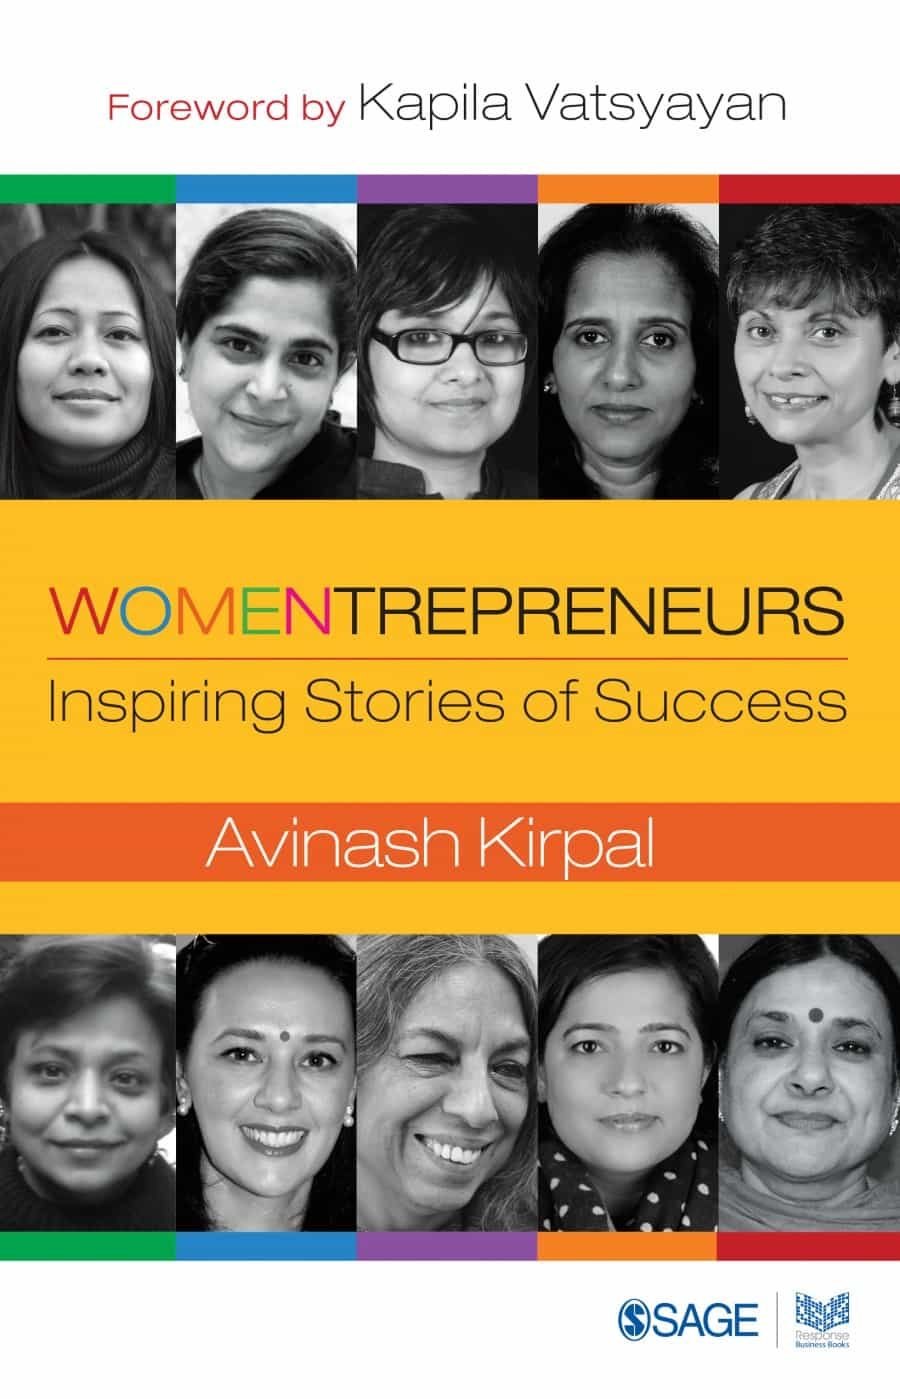 Book cover: Womentrepreneurs: Inspiring Stories of Success, Edited by Avinash Kirpal, Published by Sage Publications.